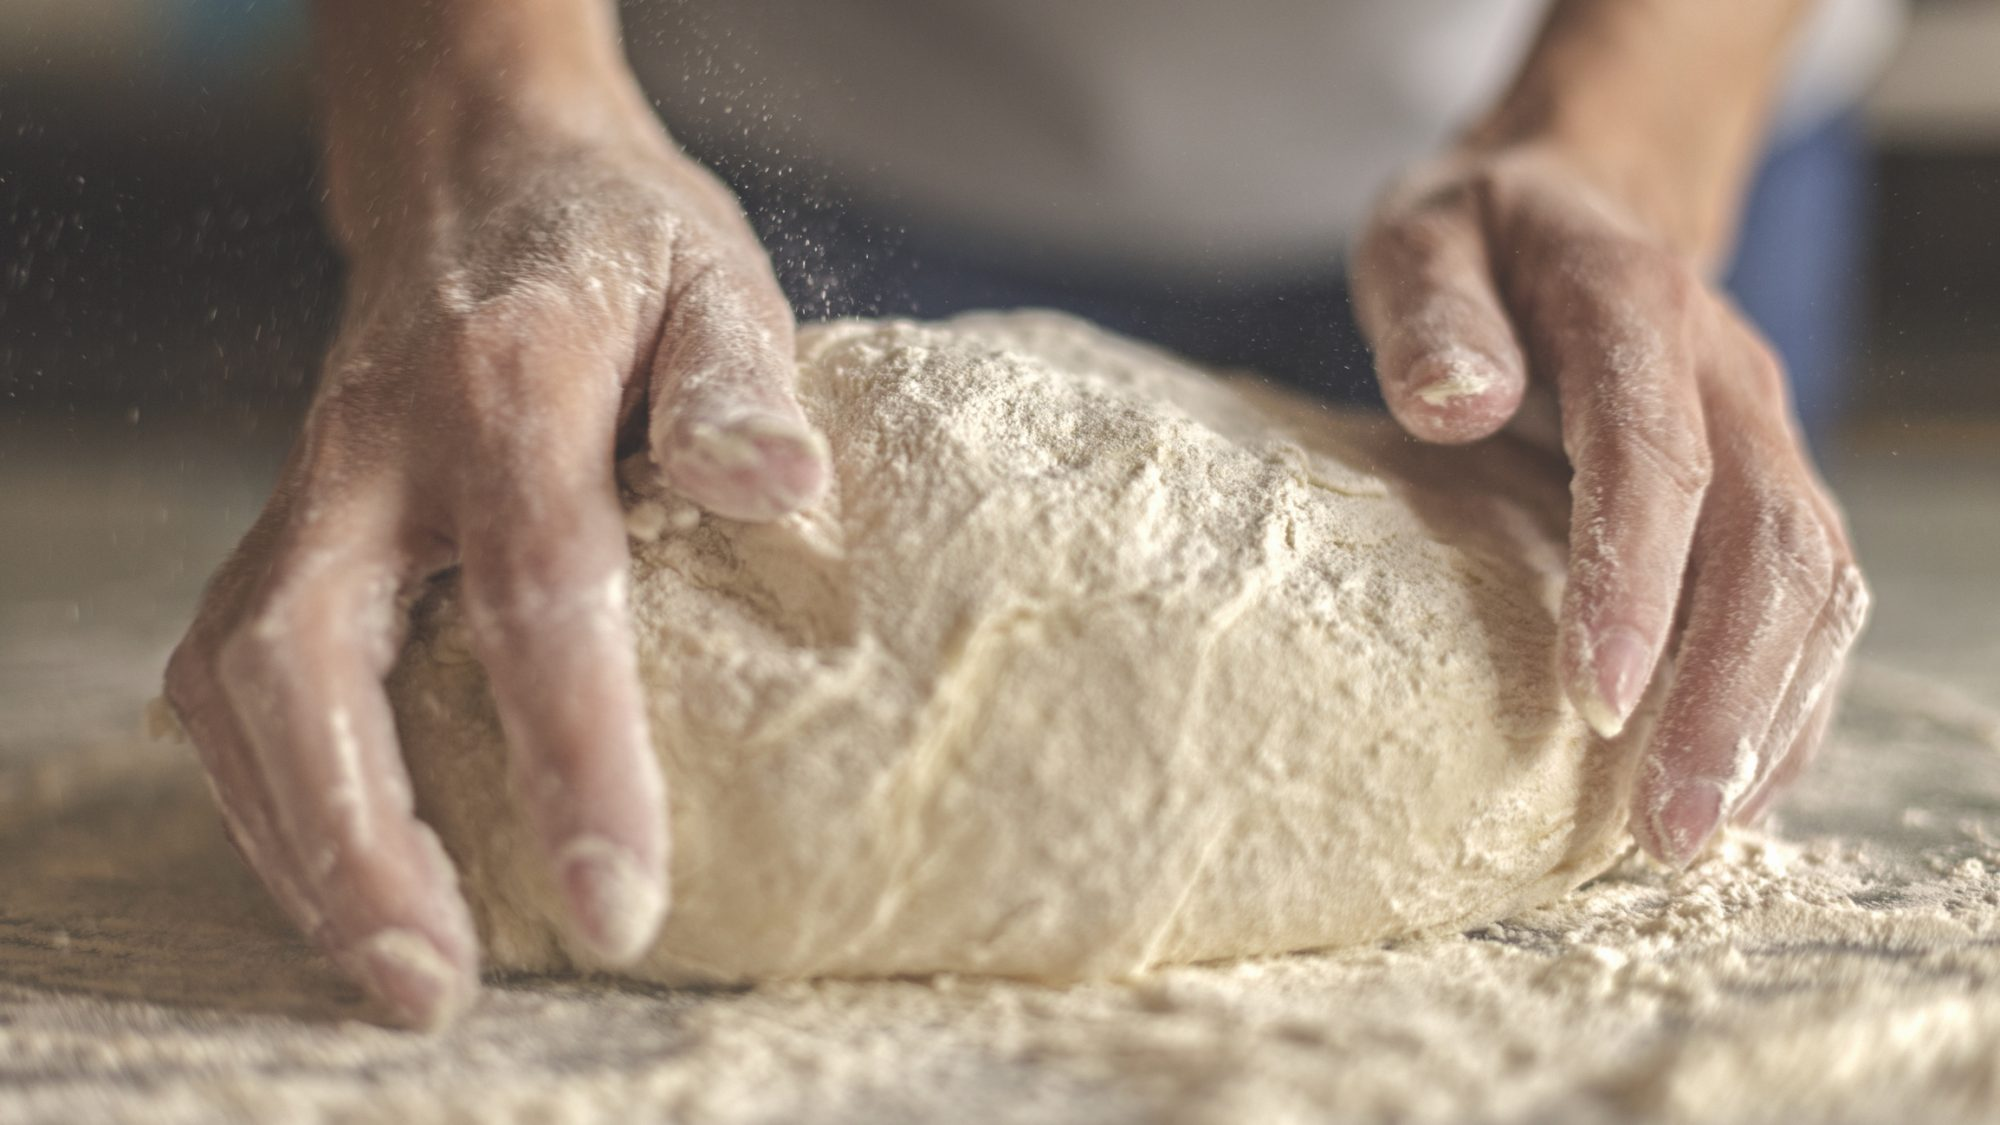 getty-bread-dough-image